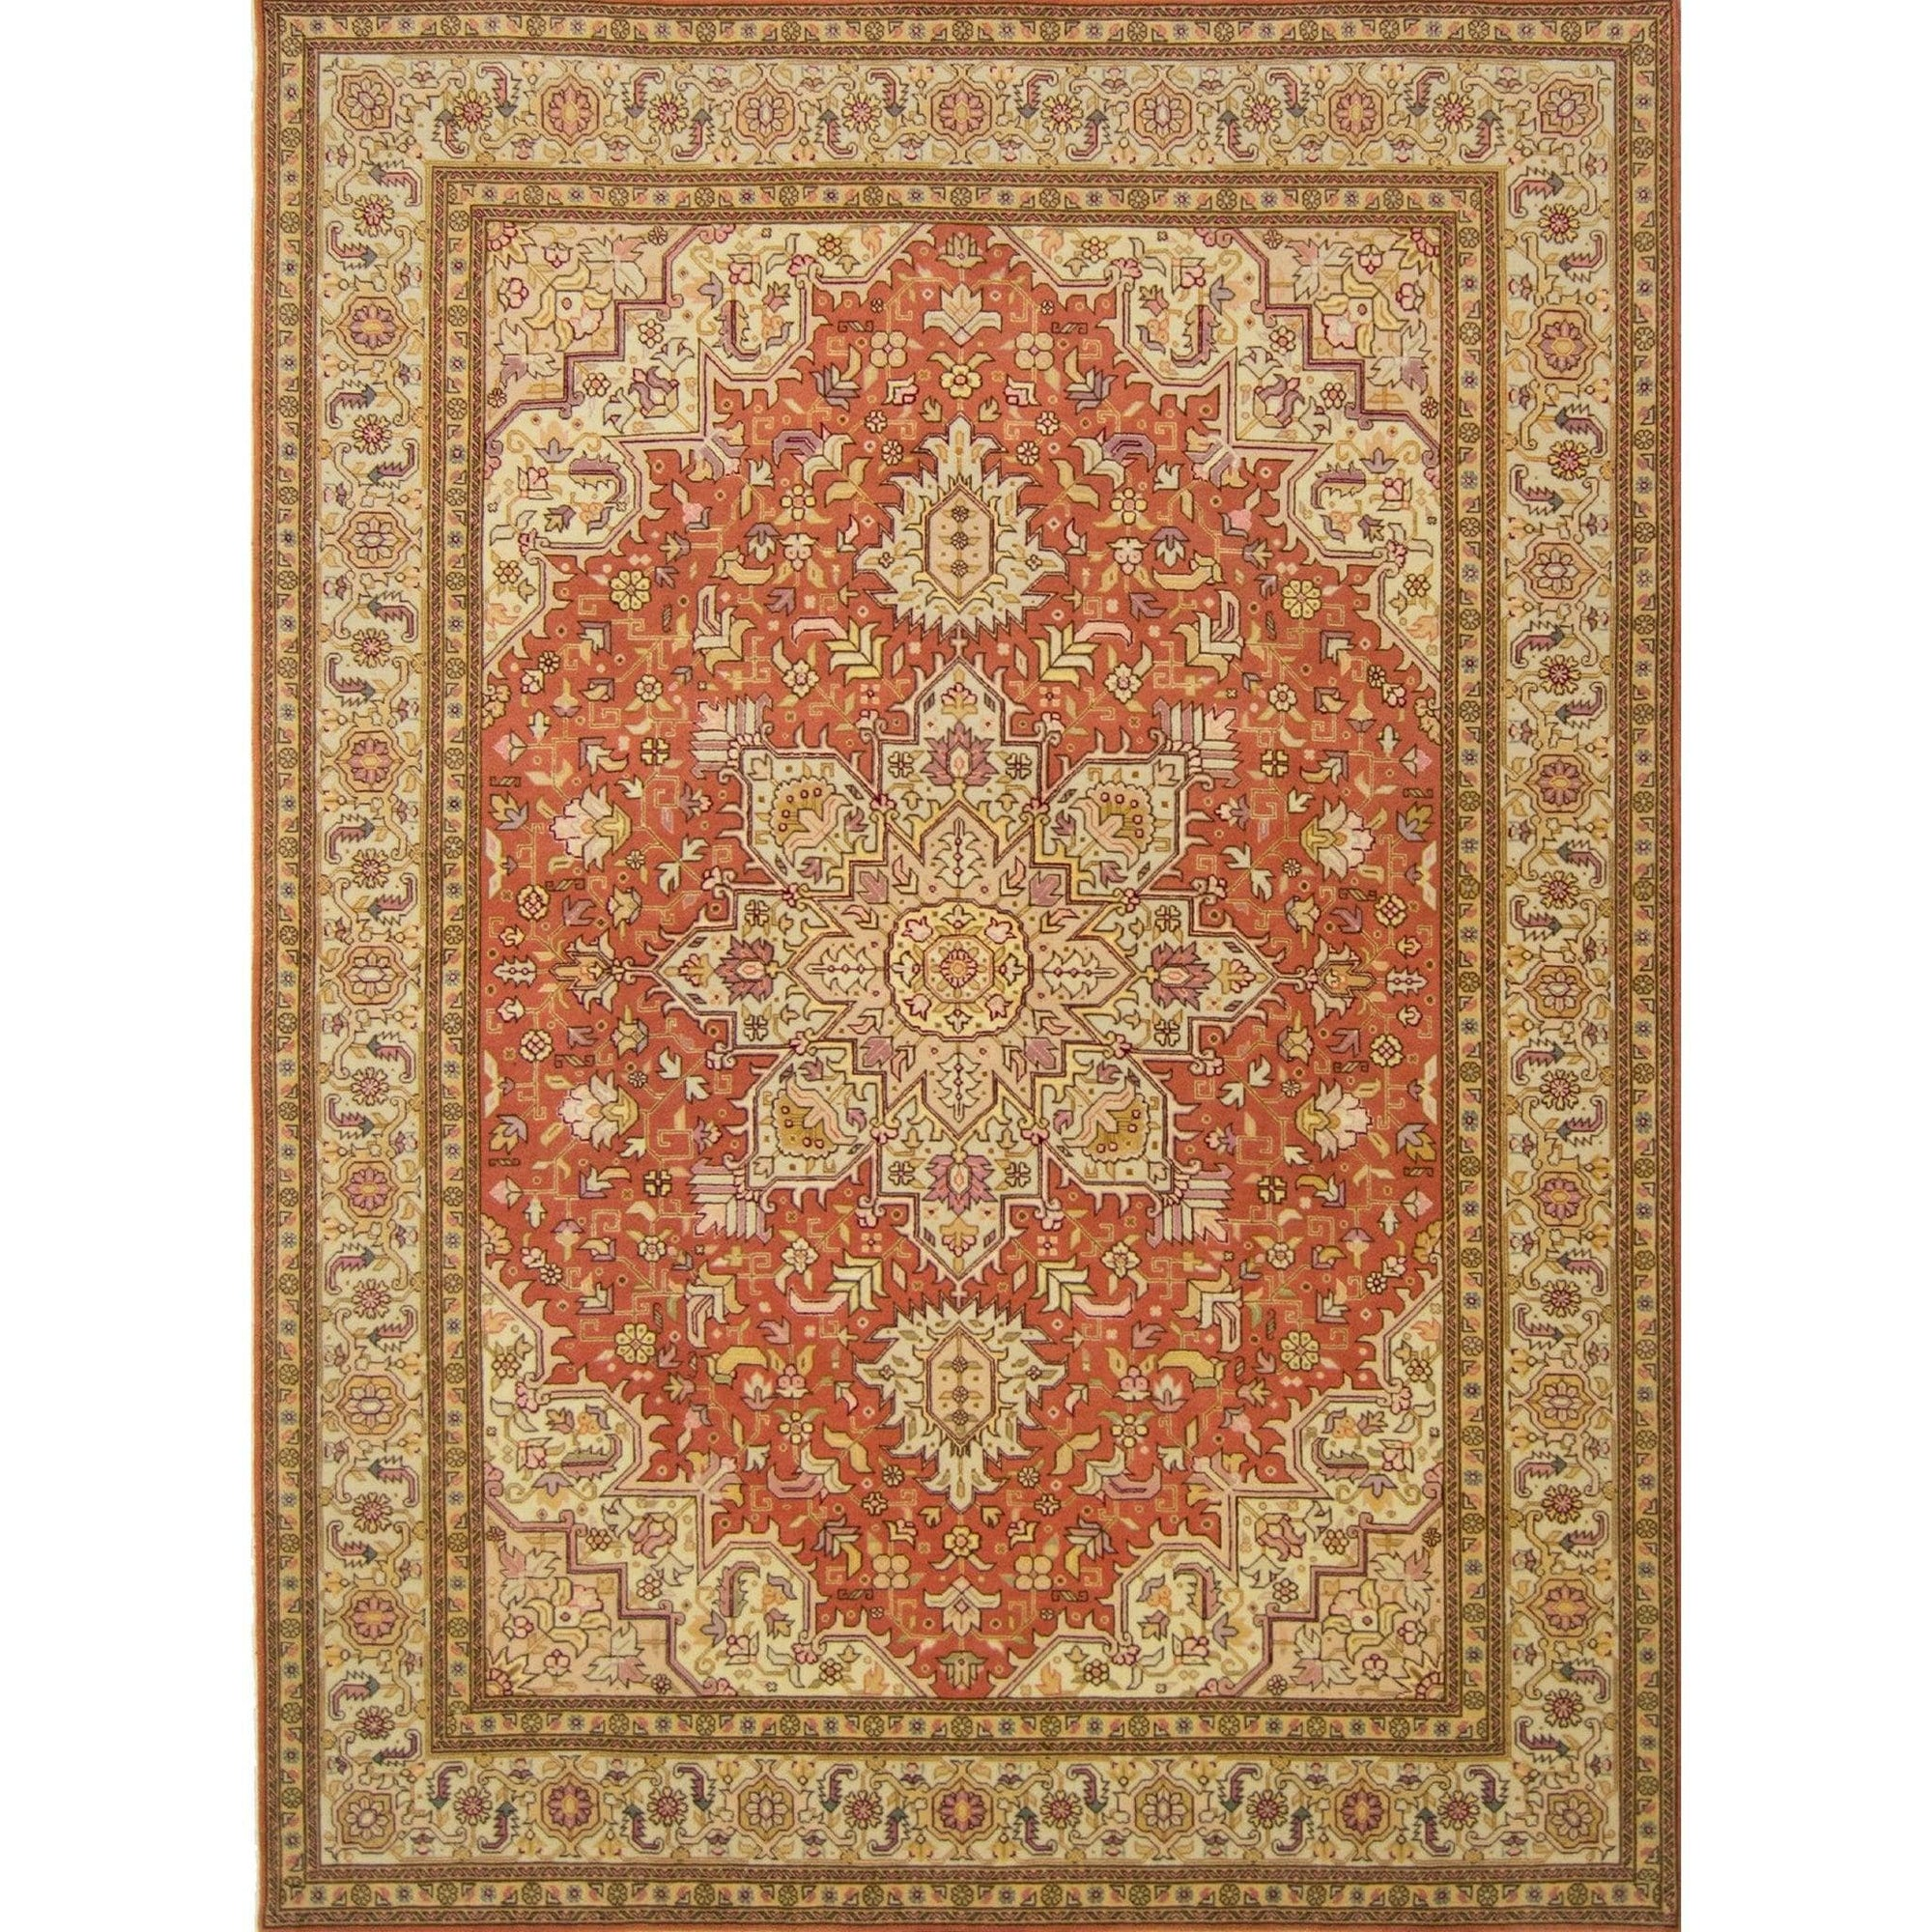 Super Fine Persian Wool and Silk Tabriz Rug 150cm x 210cm Persian-Rug | House-of-Haghi | NewMarket | Auckland | NZ | Handmade Persian Rugs | Hand Knotted Persian Rugs